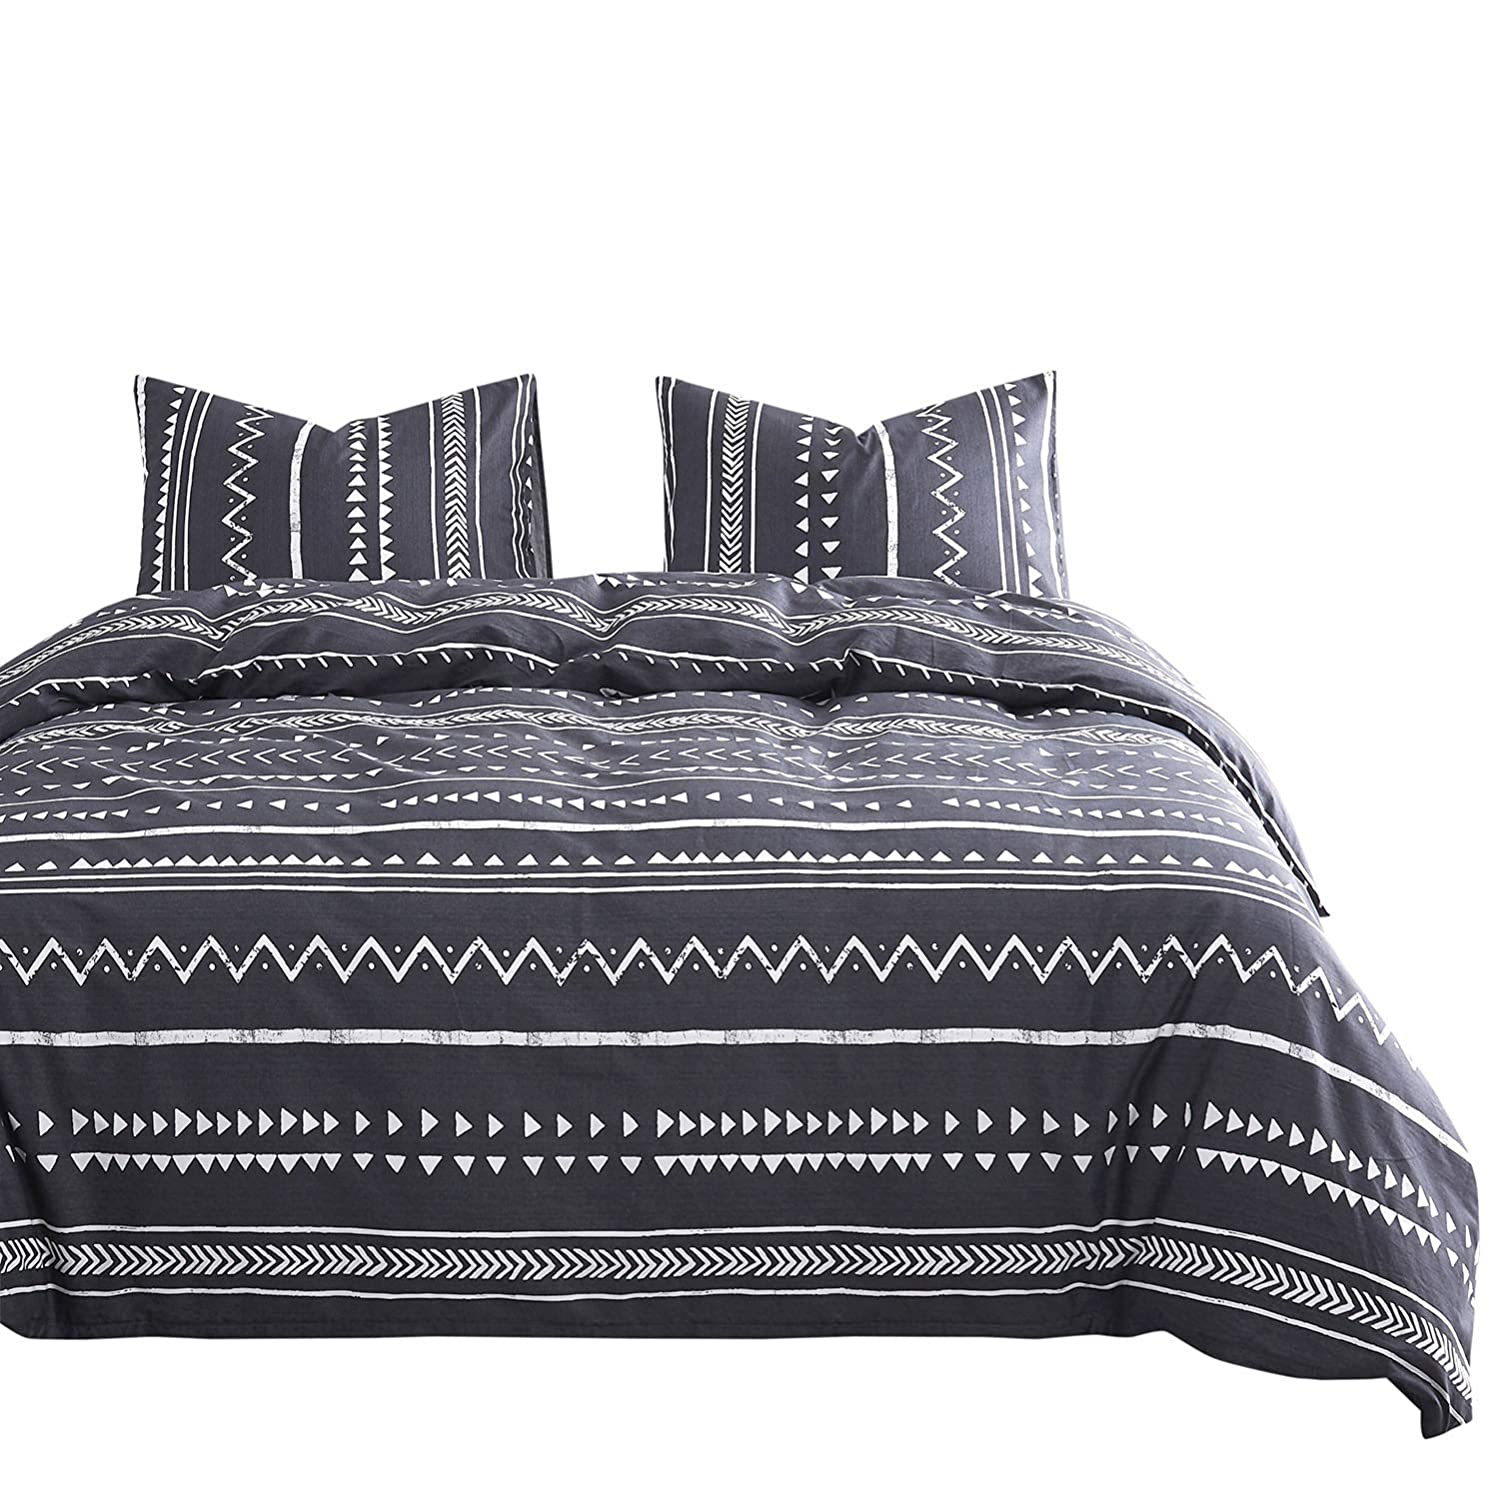 Wake In Cloud - Aztec Comforter Set, 100% Cotton Fabric with Soft Microfiber Fill Bedding, Dark Gray Grey with White Geometric Modern Pattern Printed (3pcs, Twin Size)